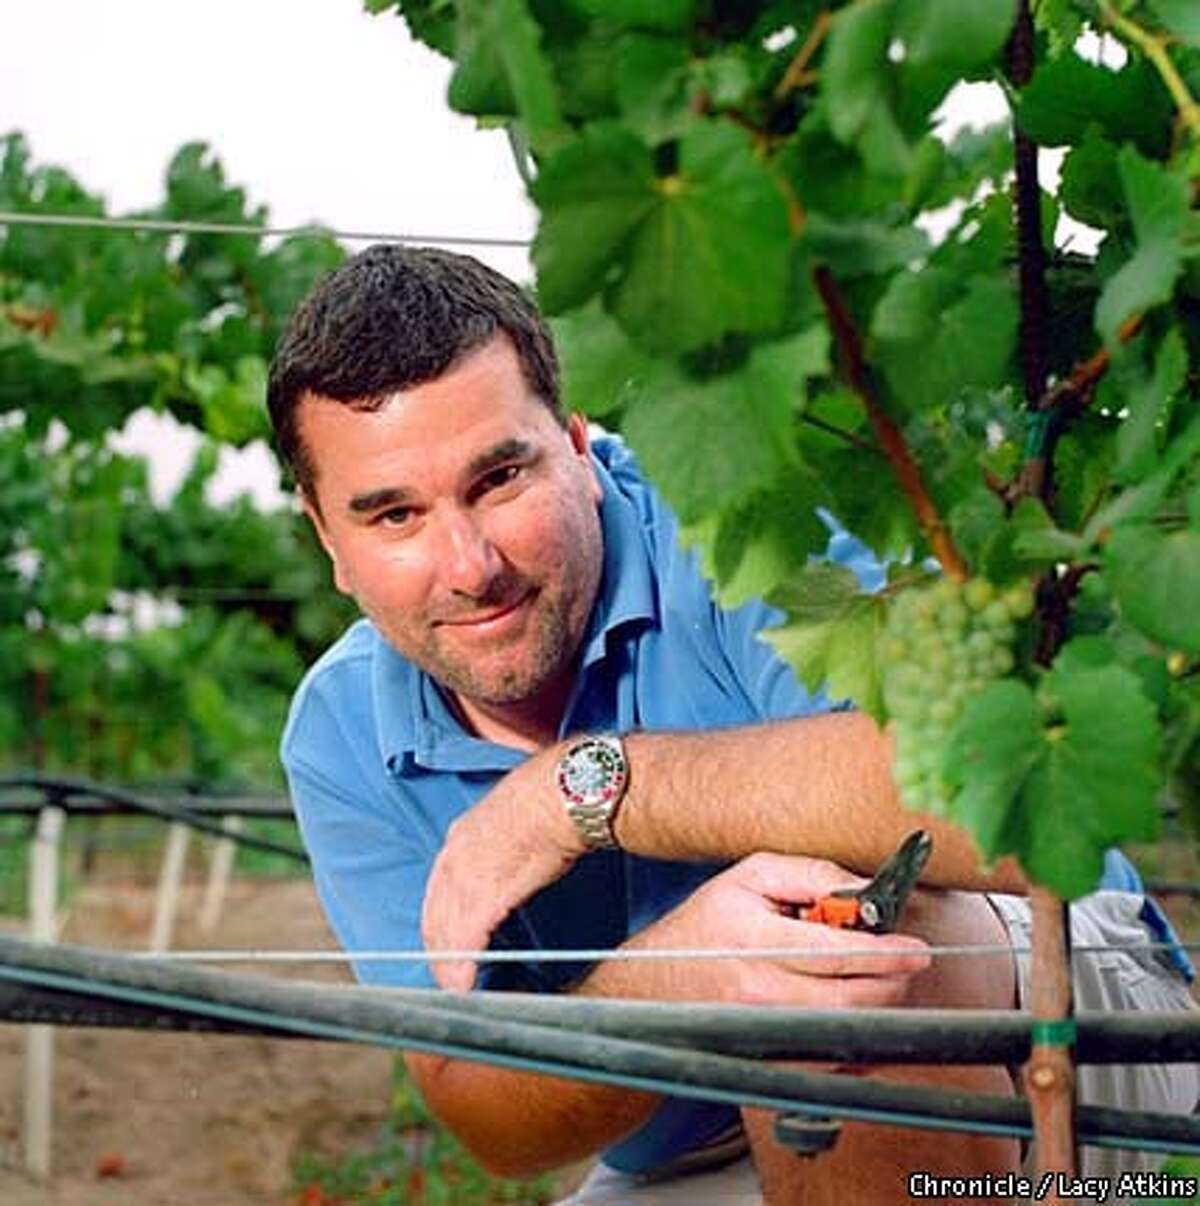 Winemaker Mark Aubert. Chronicle photo by Lacy Atkins